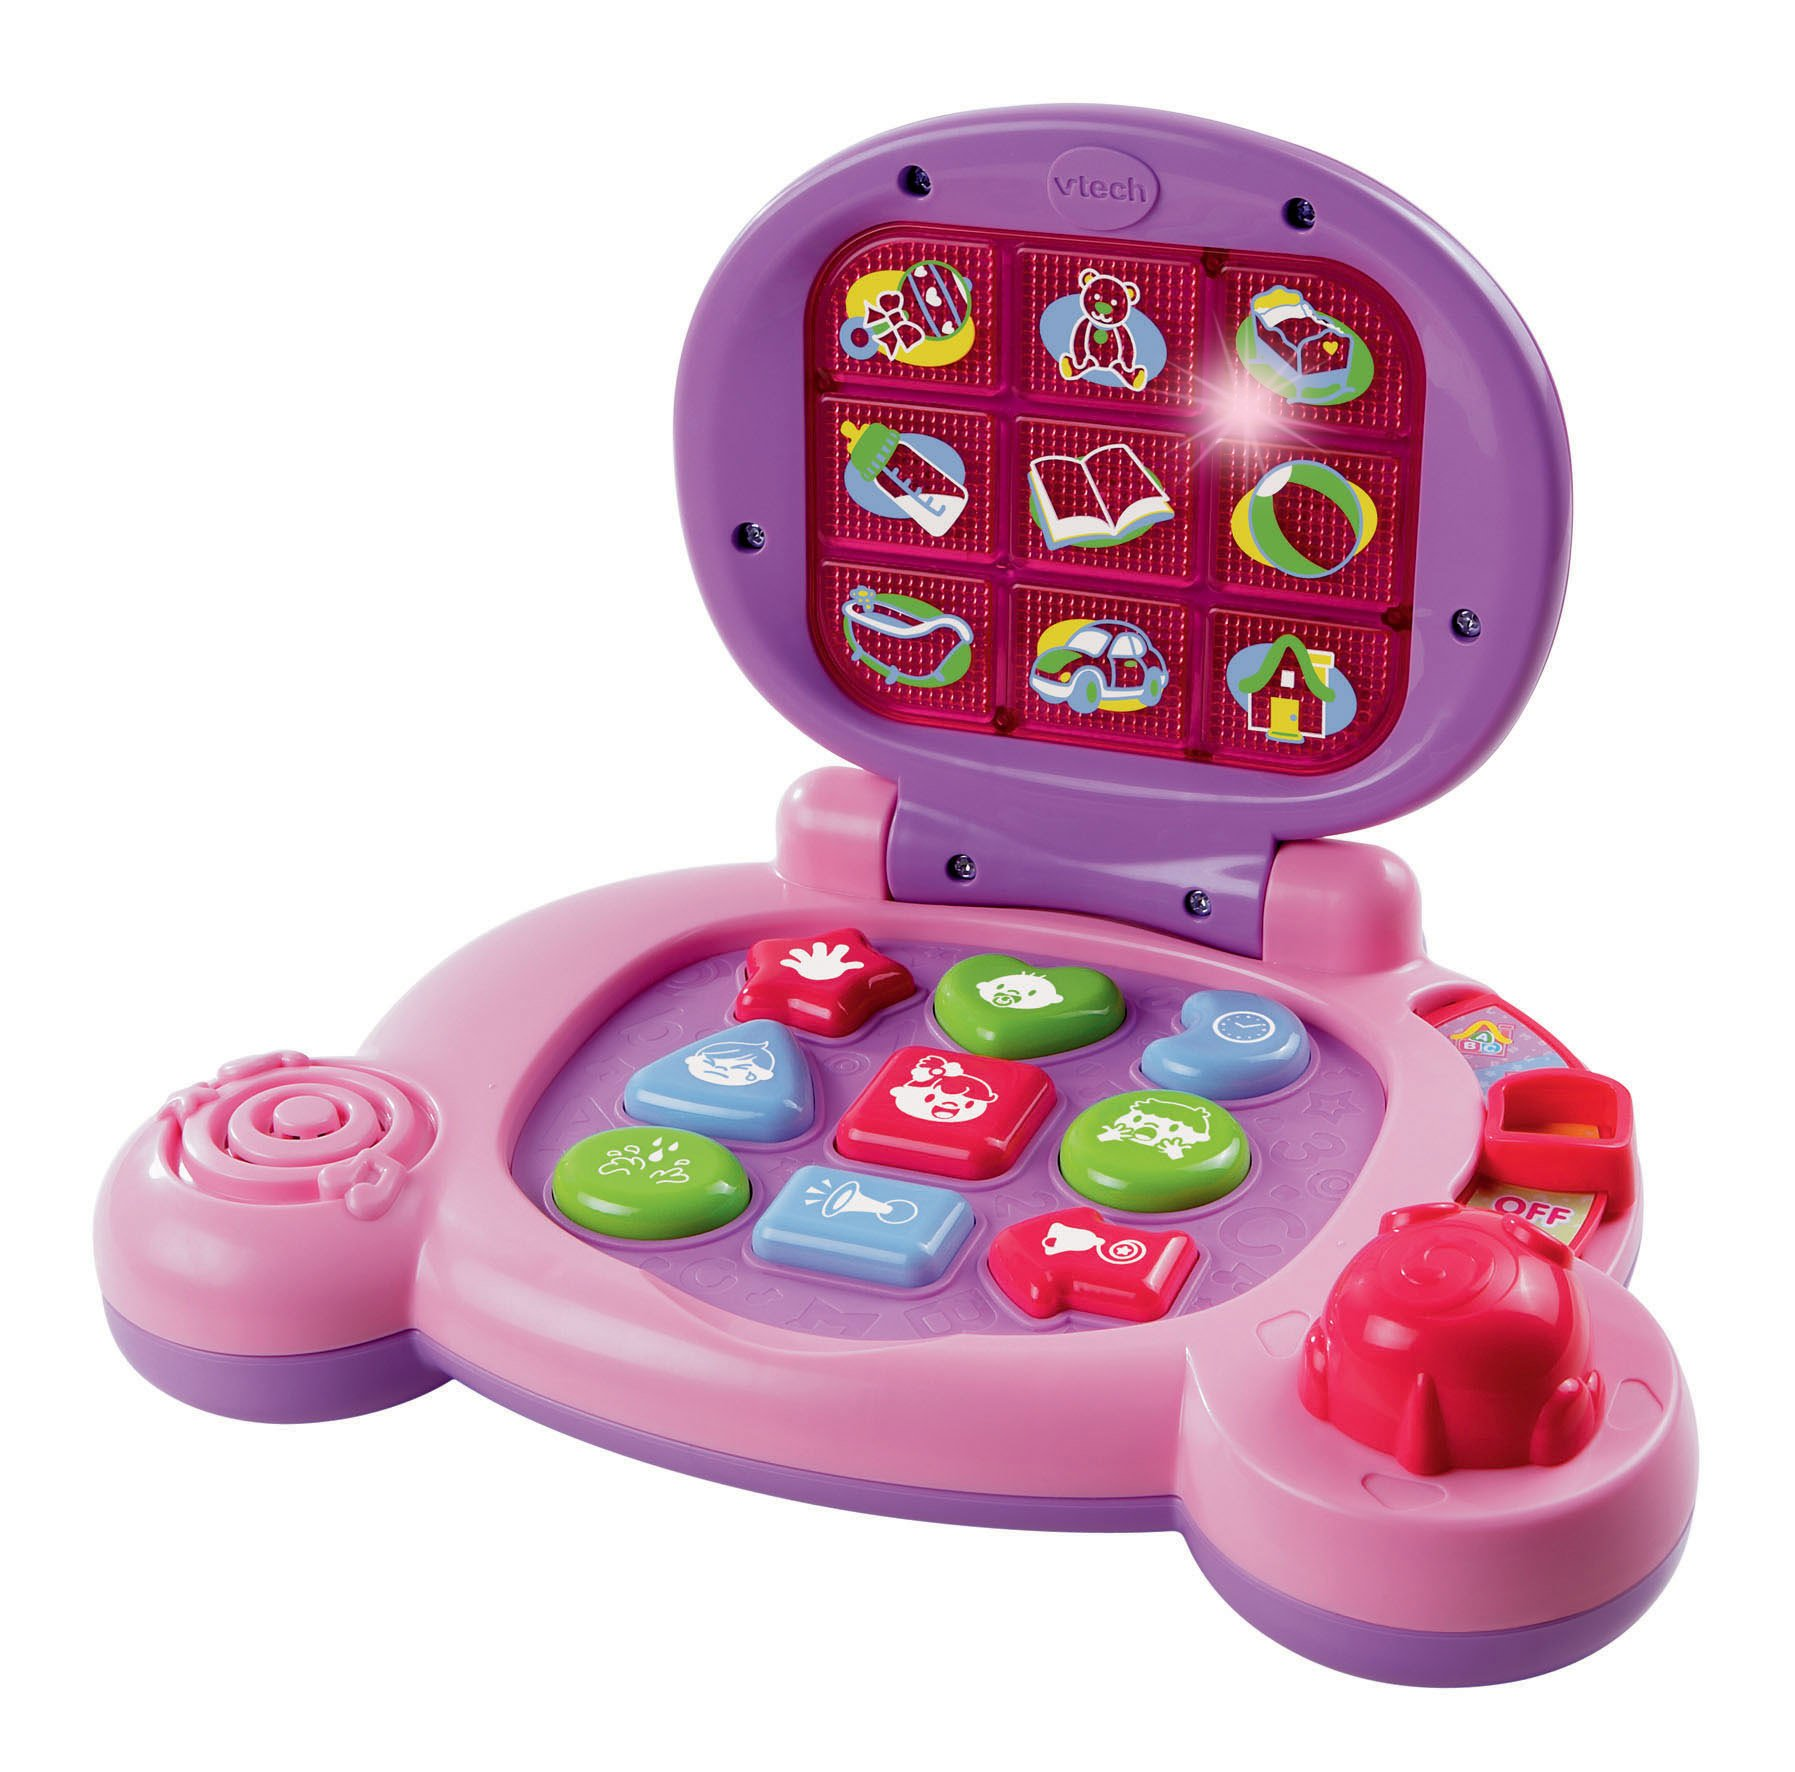 VTech Baby's Learning Laptop, Pink, Great Gift For Kids, Toddlers, Toy for Boys and Girls, Ages Infant, 1, 2, 3